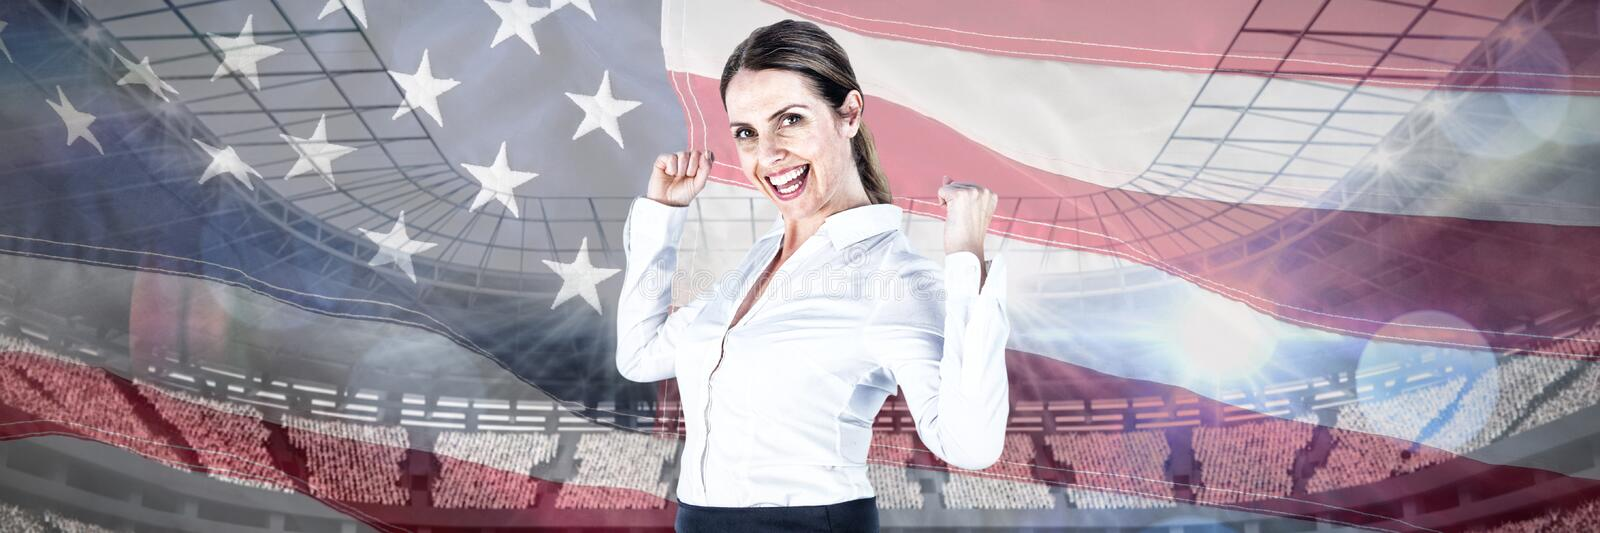 Composite image of portrait of successful businesswoman with clenched fists royalty free stock photo